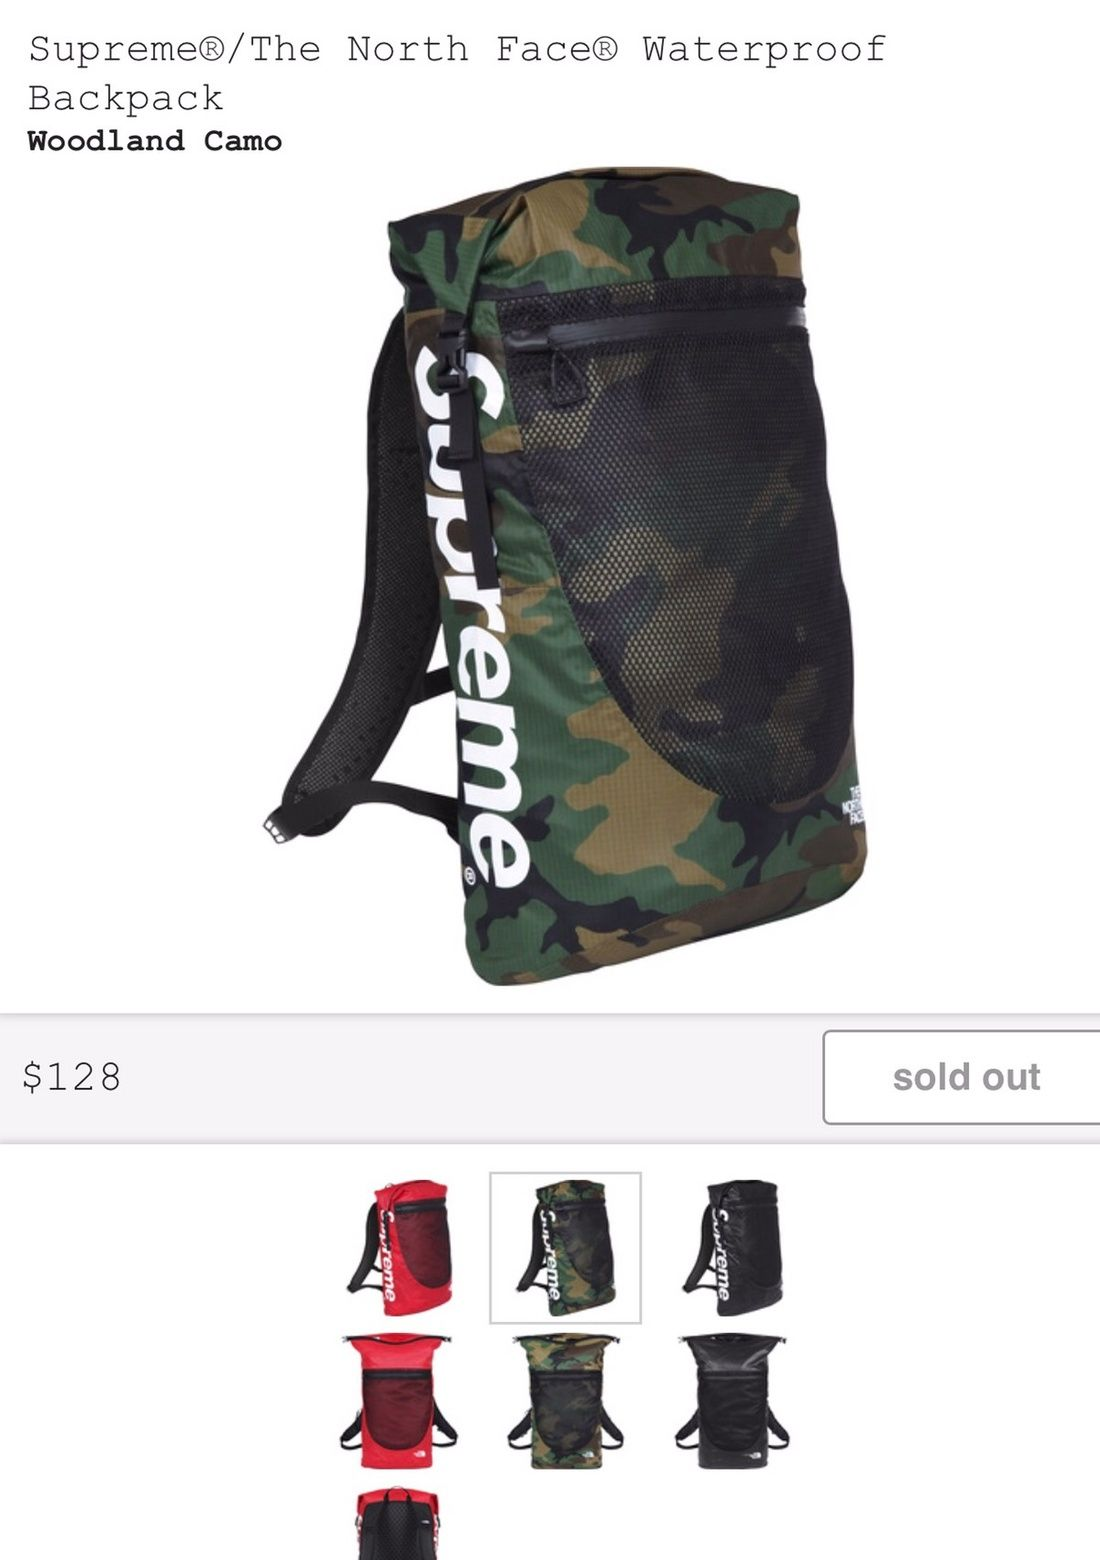 828082eb Supreme The North Face Waterproof Backpack Woodland Camo- Fenix ...